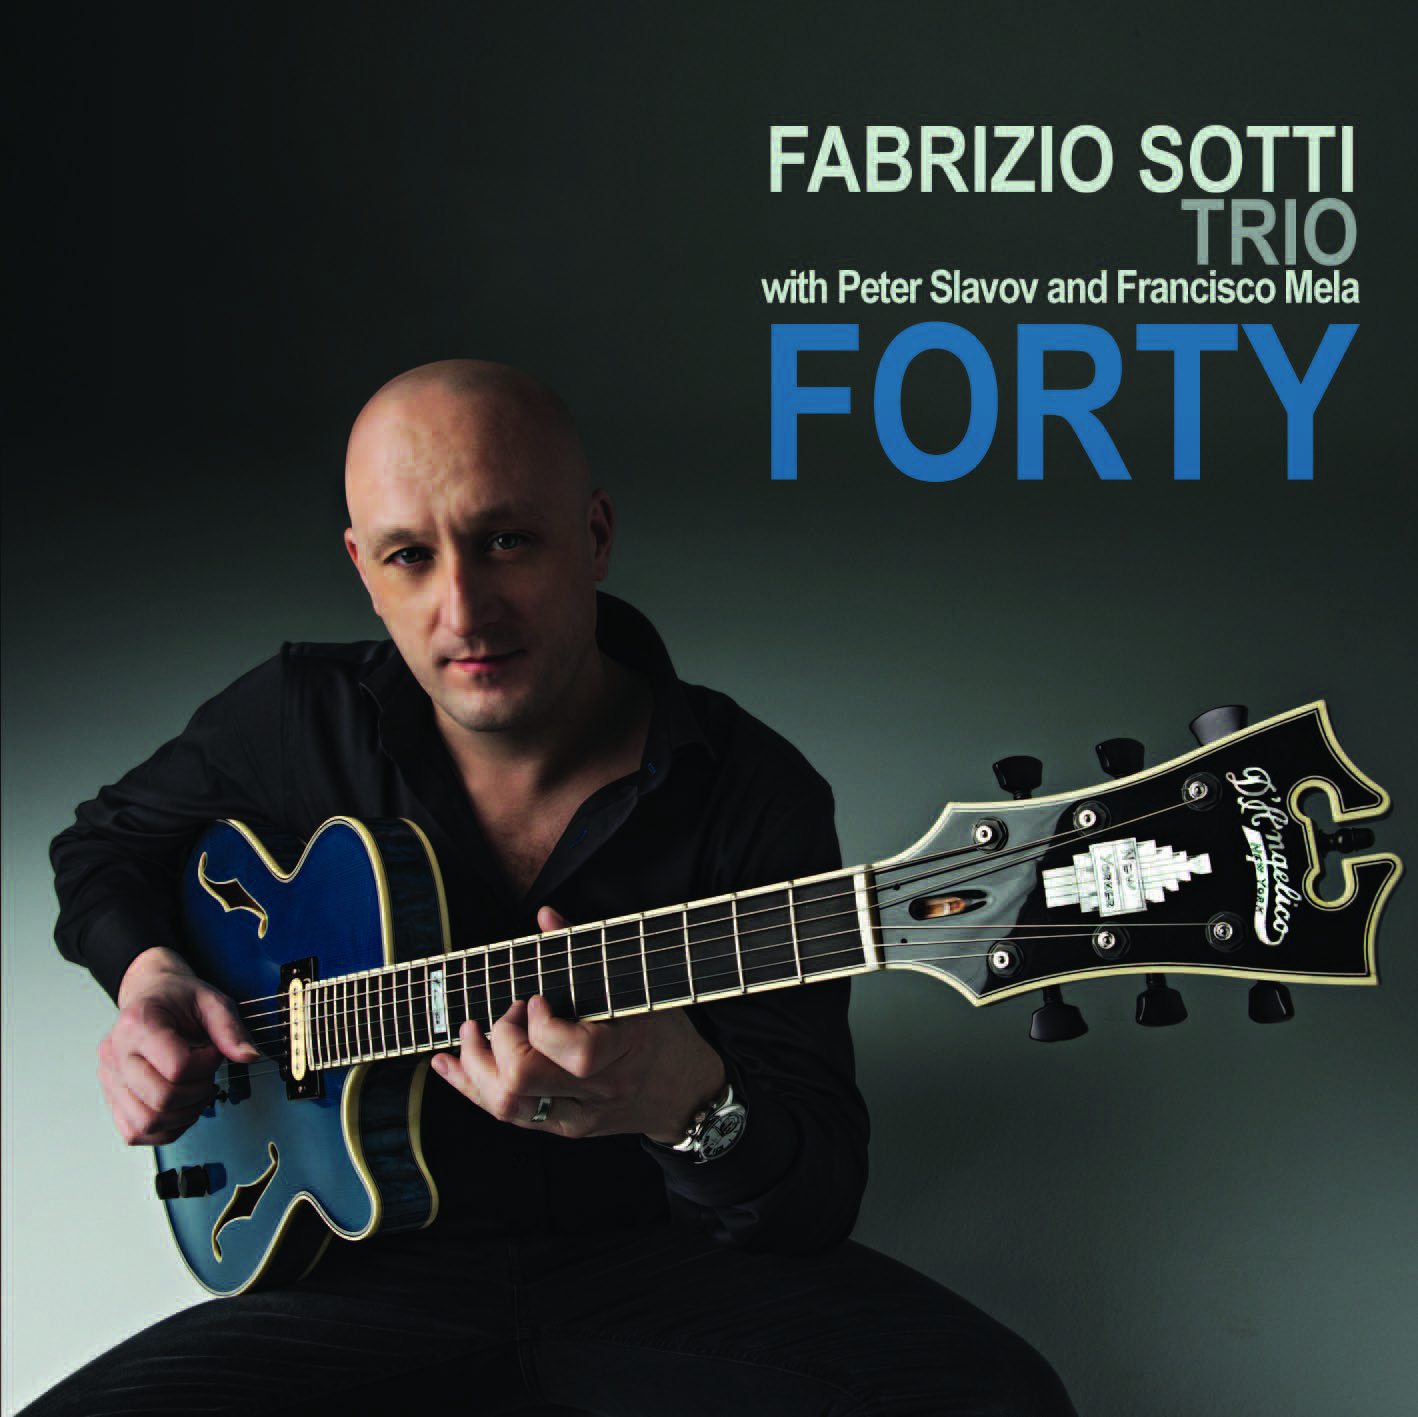 Classicalite includes Fabrizio Sotti's 'Forty' on current 'Best-Of' list